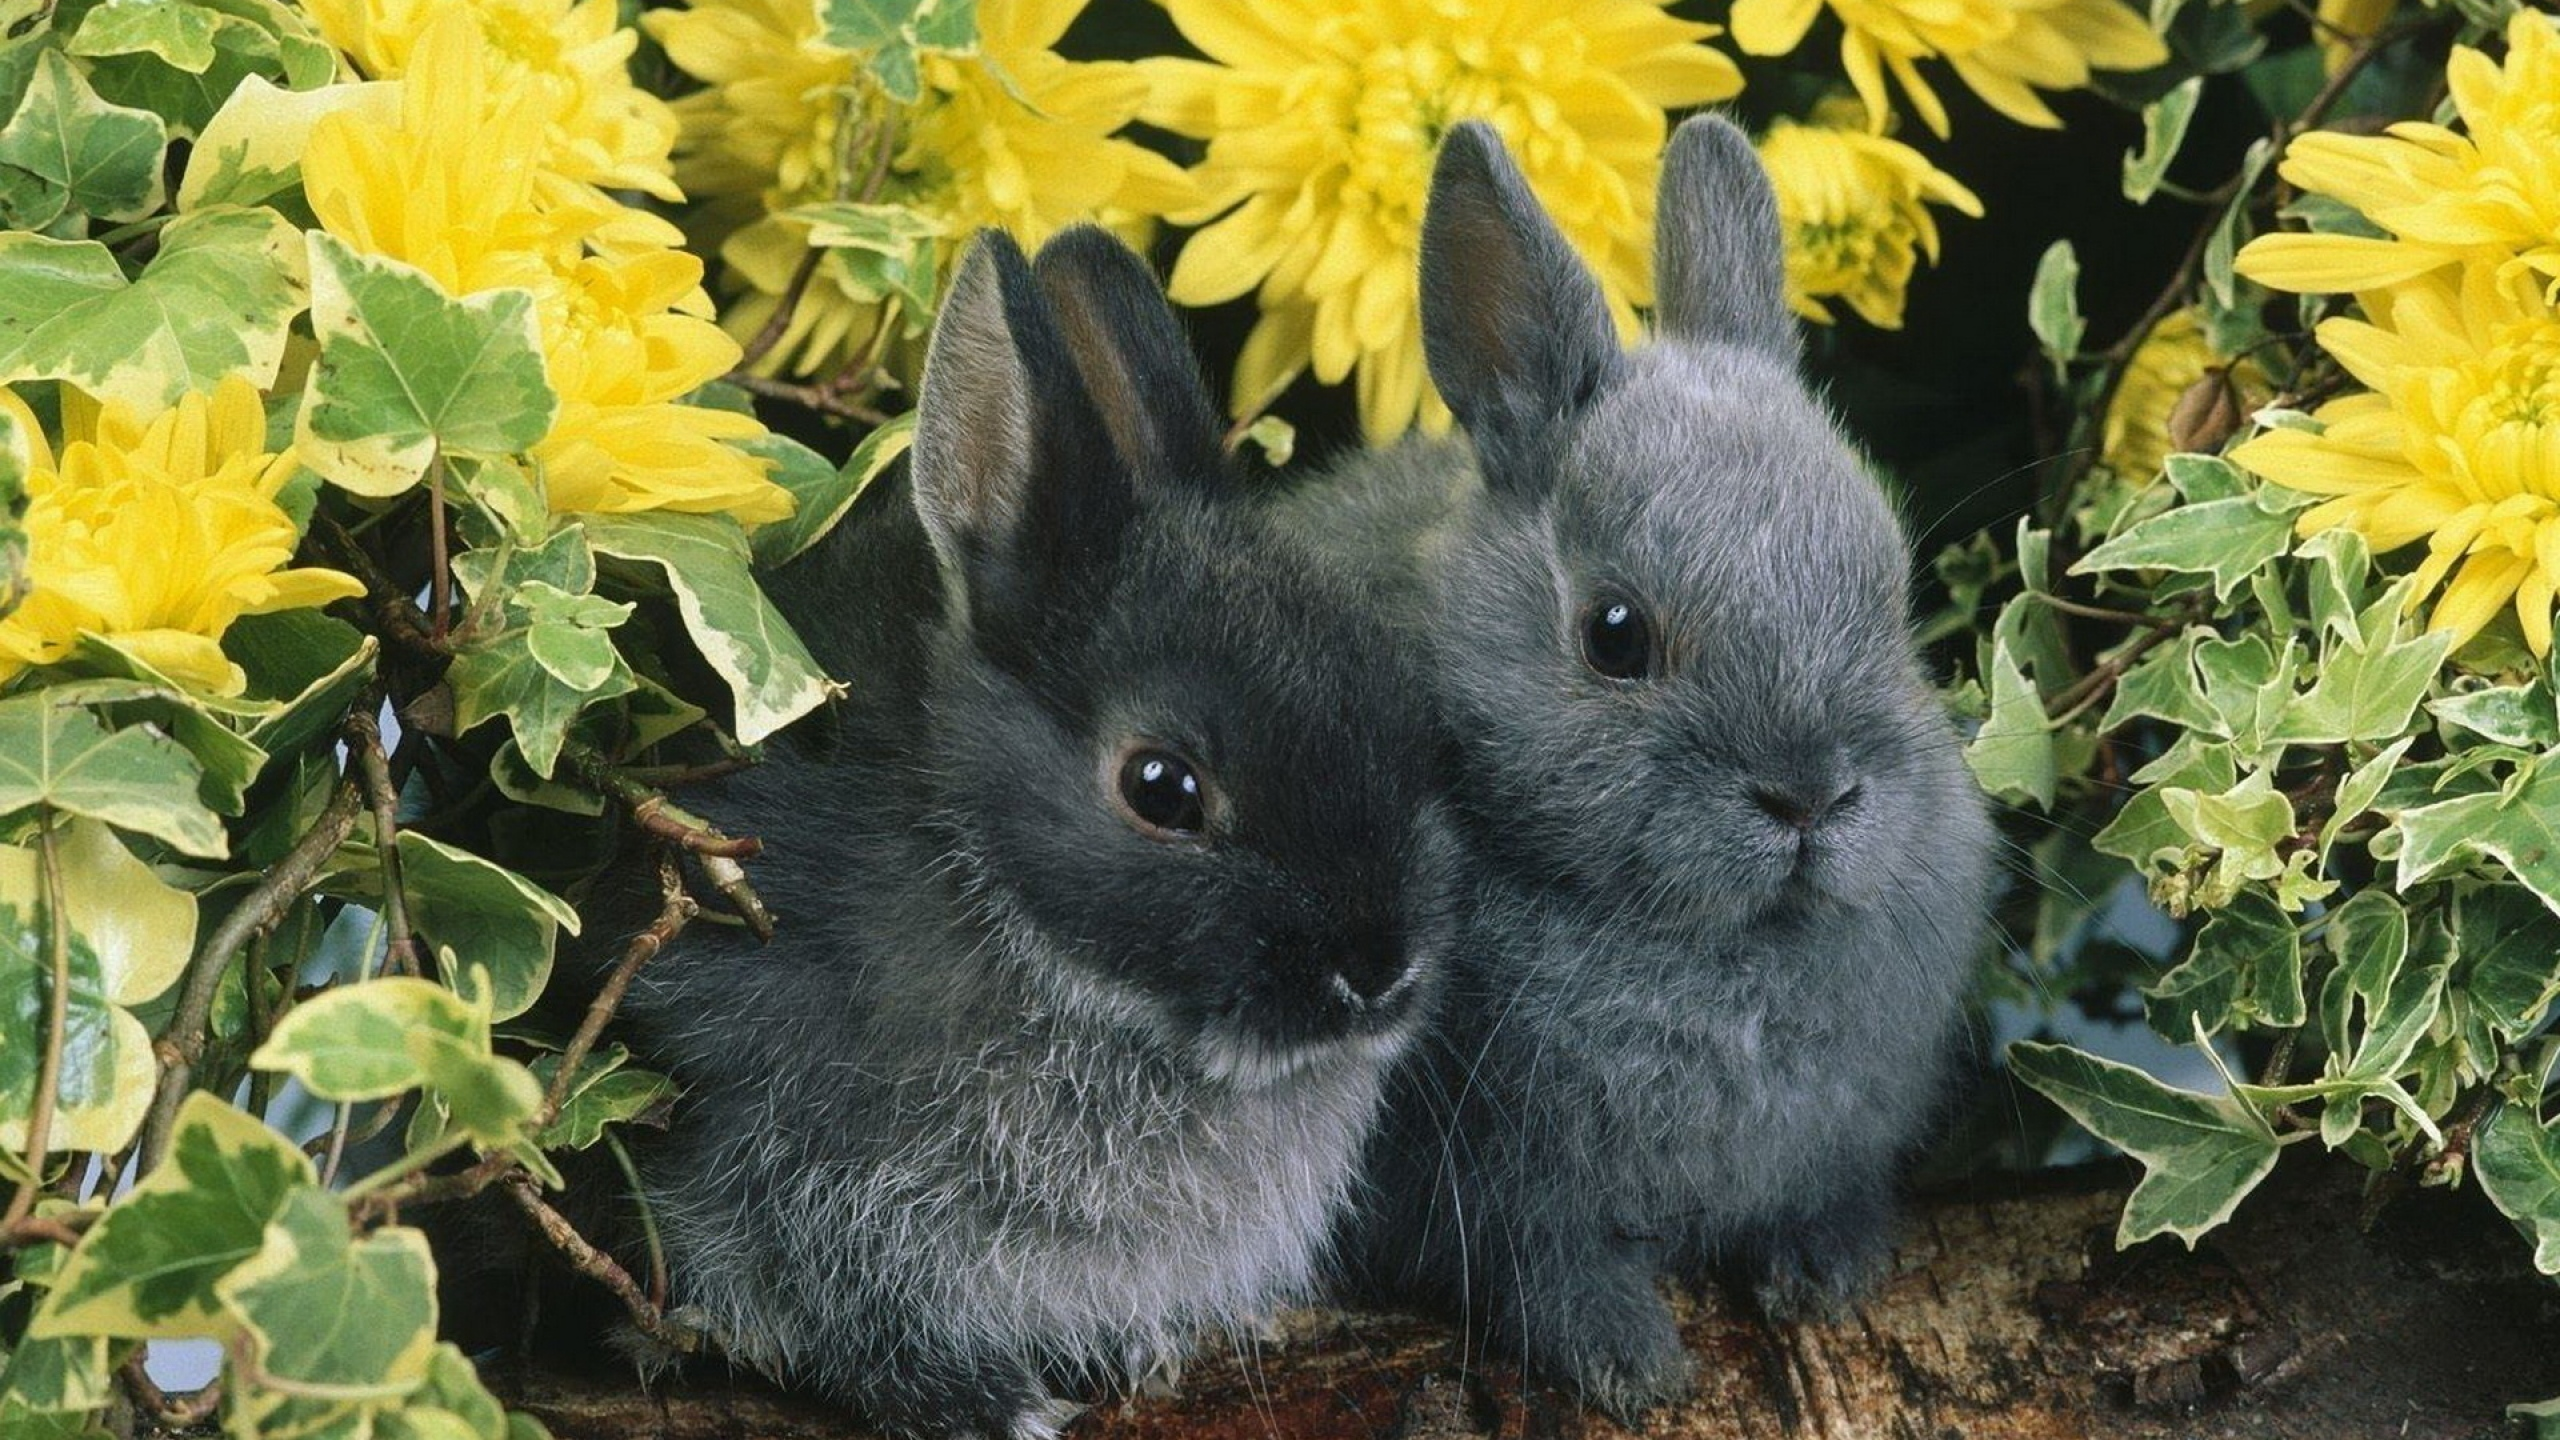 rabbits-couple-grass-hide-2560x1440